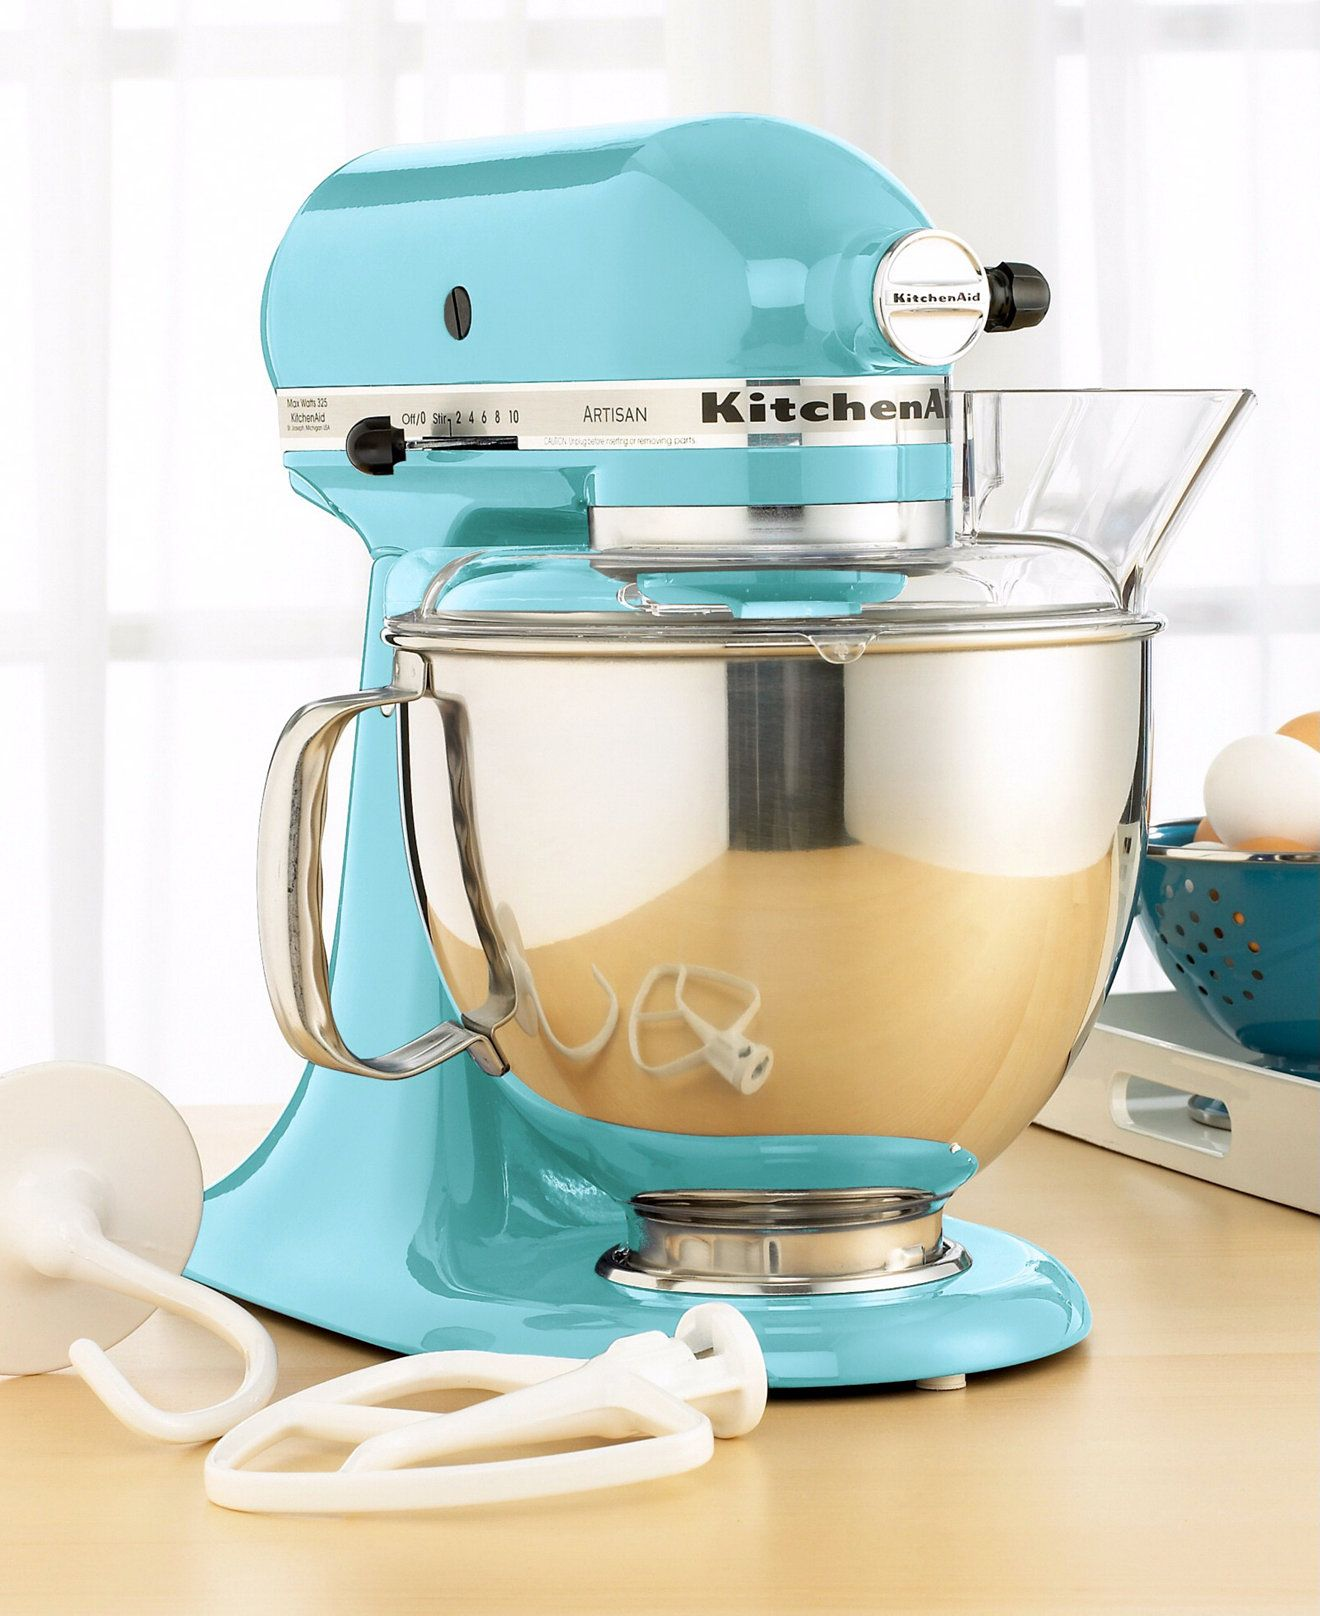 Kitchenaid Artisan 5 Qt Stand Mixer In Aqua Sky Everything